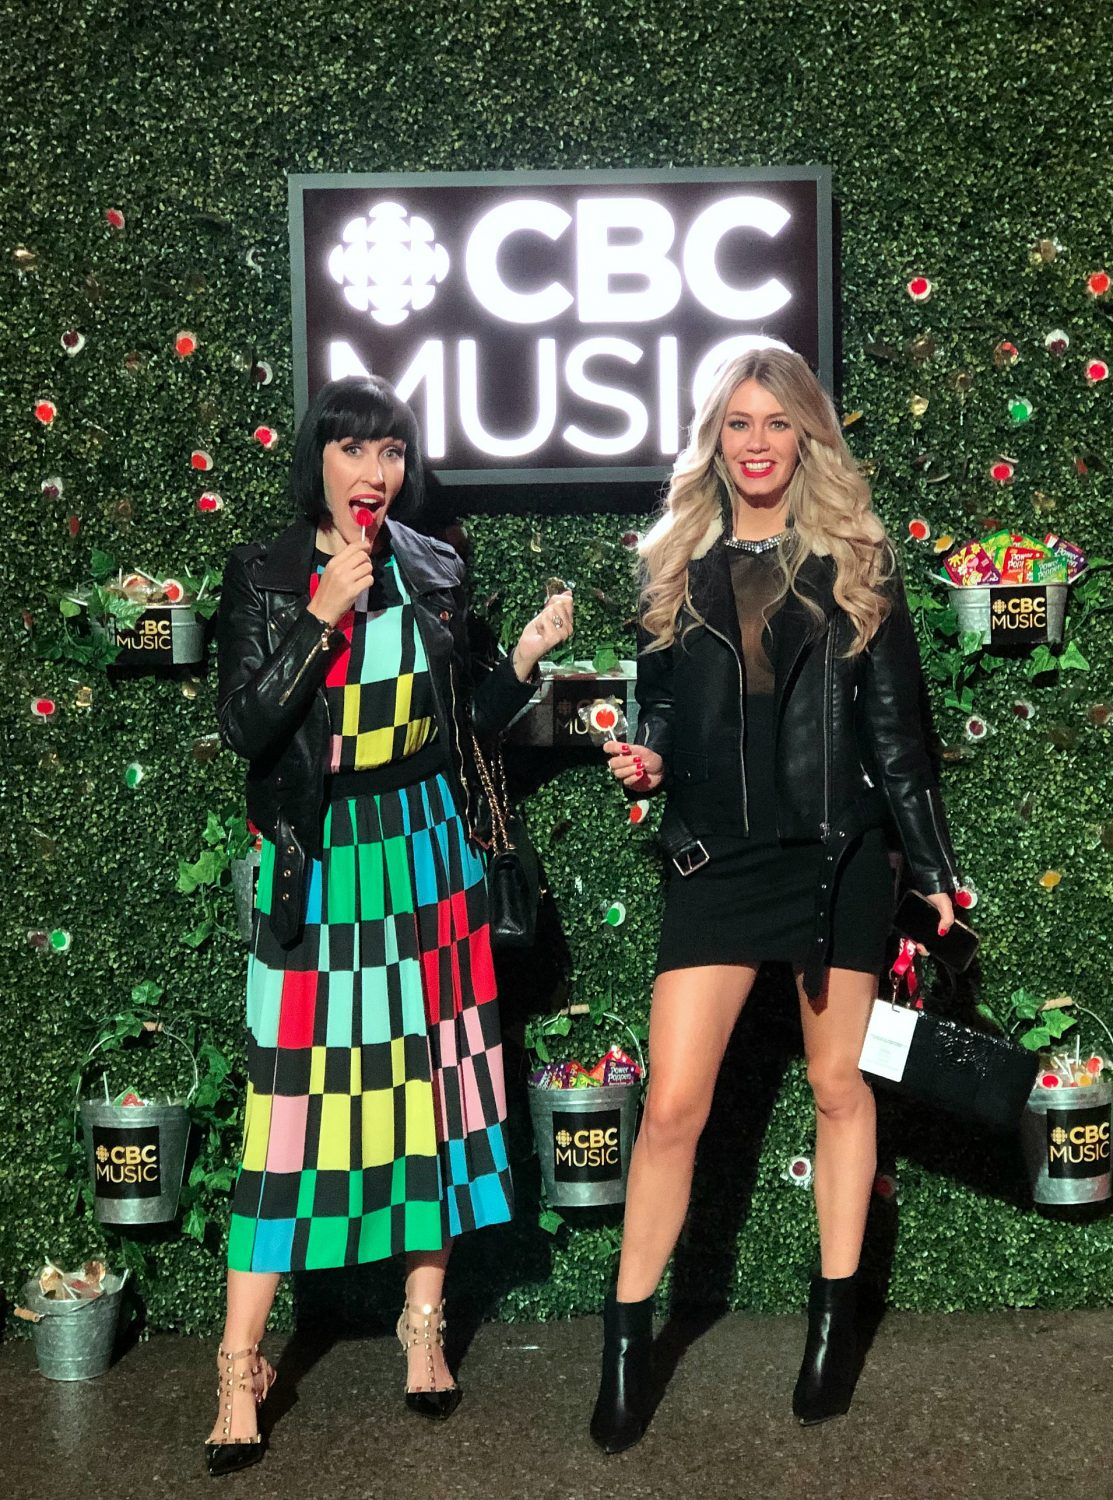 CBC Music Green Wall - Juno Awards London ON | The Pink Millennial